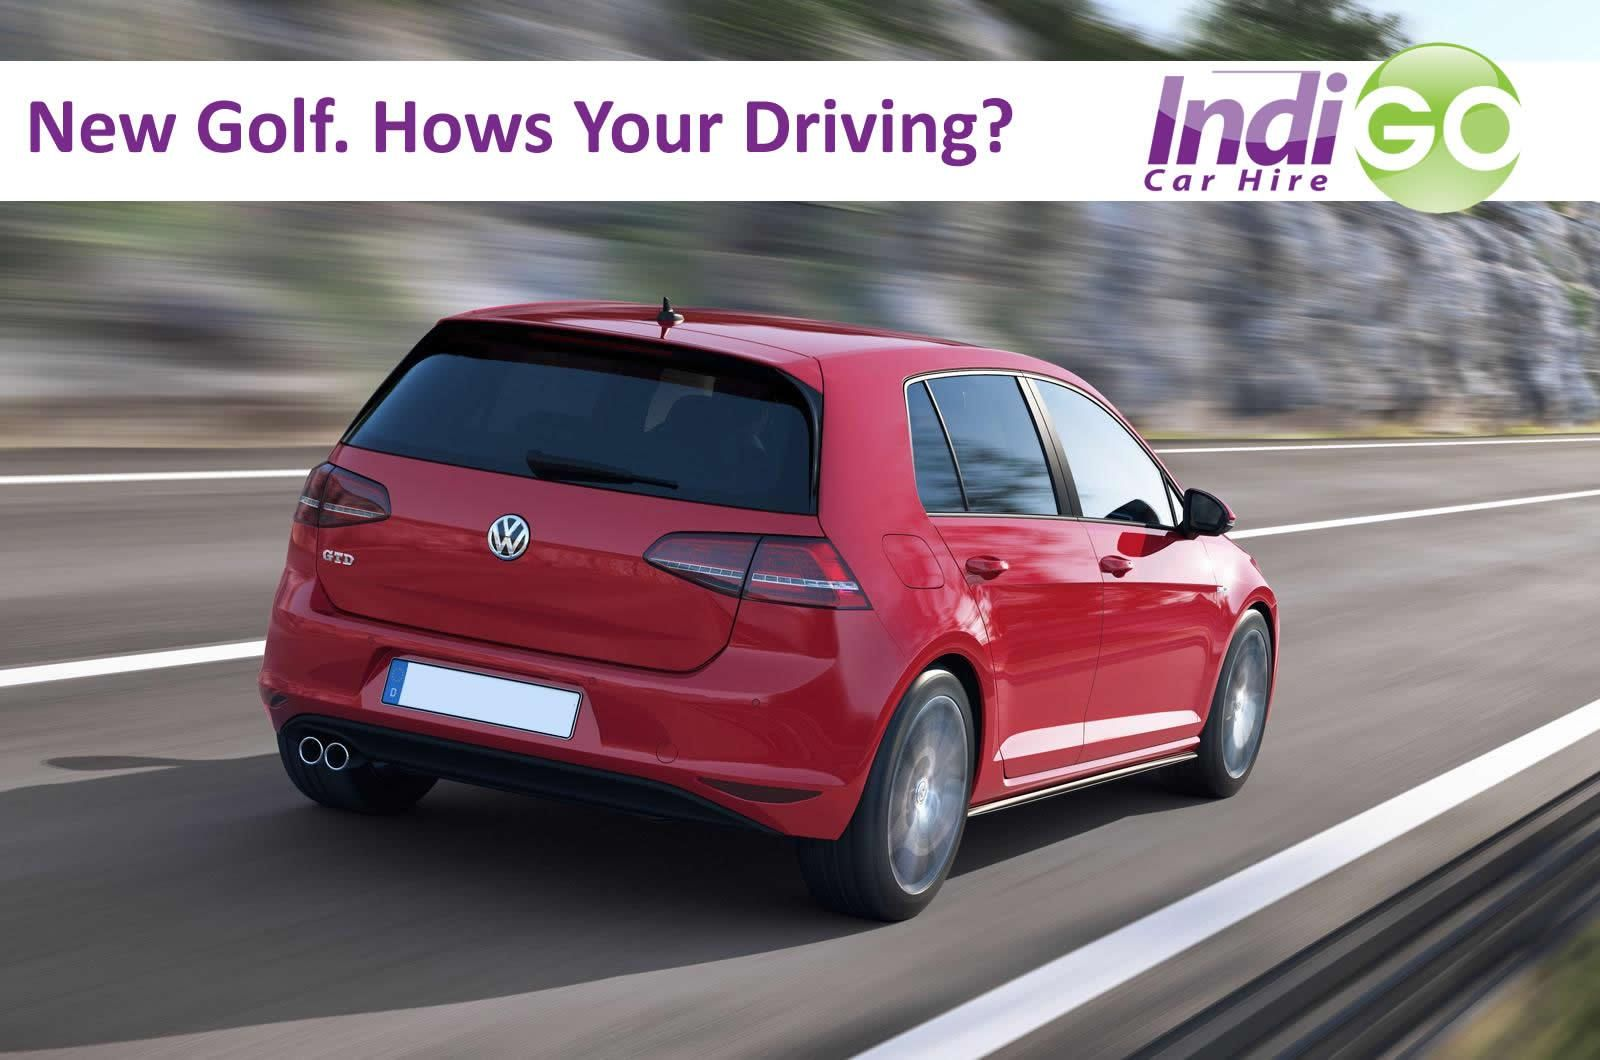 The new VW Golf out now, want to try it out for yourself